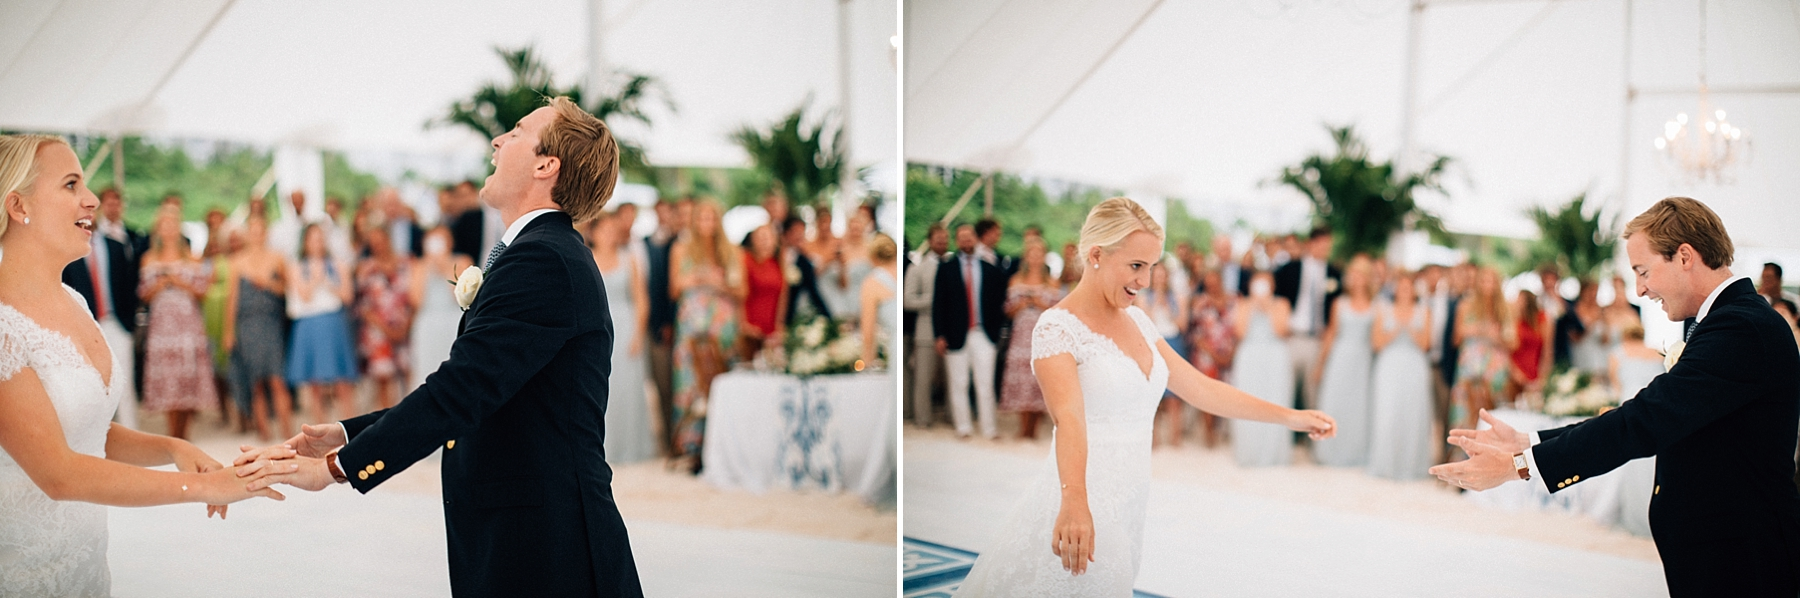 briland-wedding-photographer-harbour-island-bahamas_0040.jpg